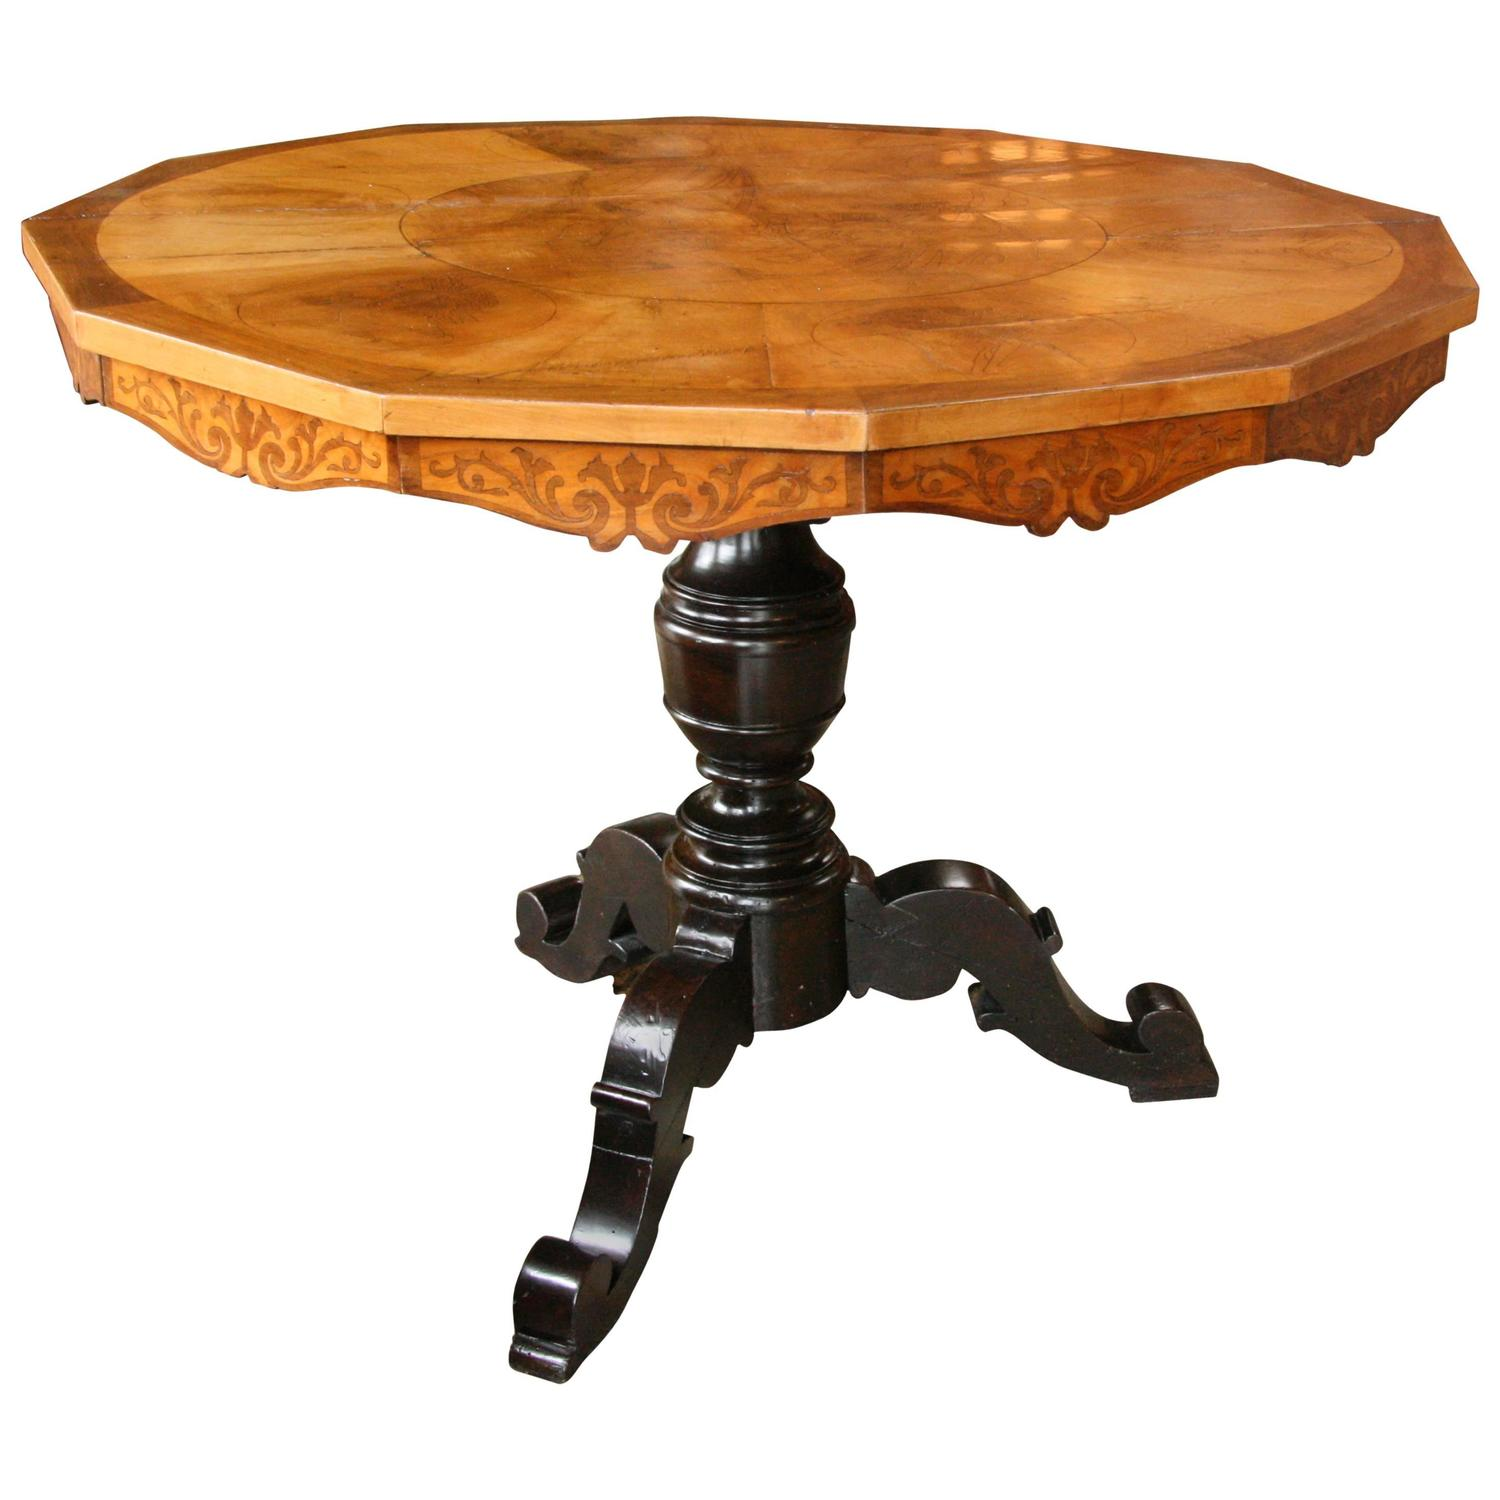 Italian 19th century round center table at 1stdibs for Table th center